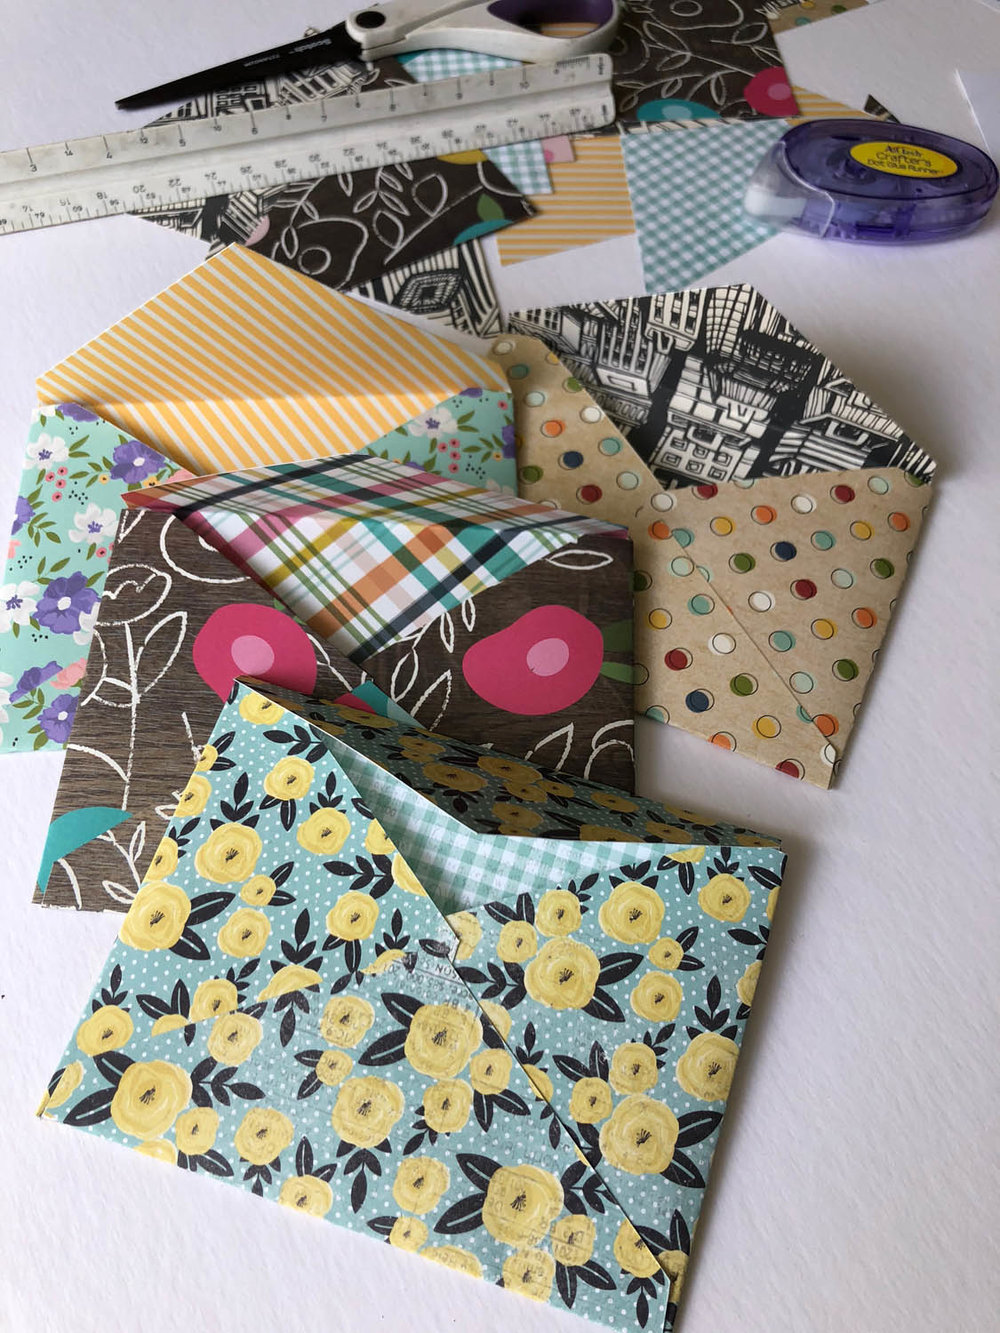 Supplies for making DIY envelopes with scrapbook paper